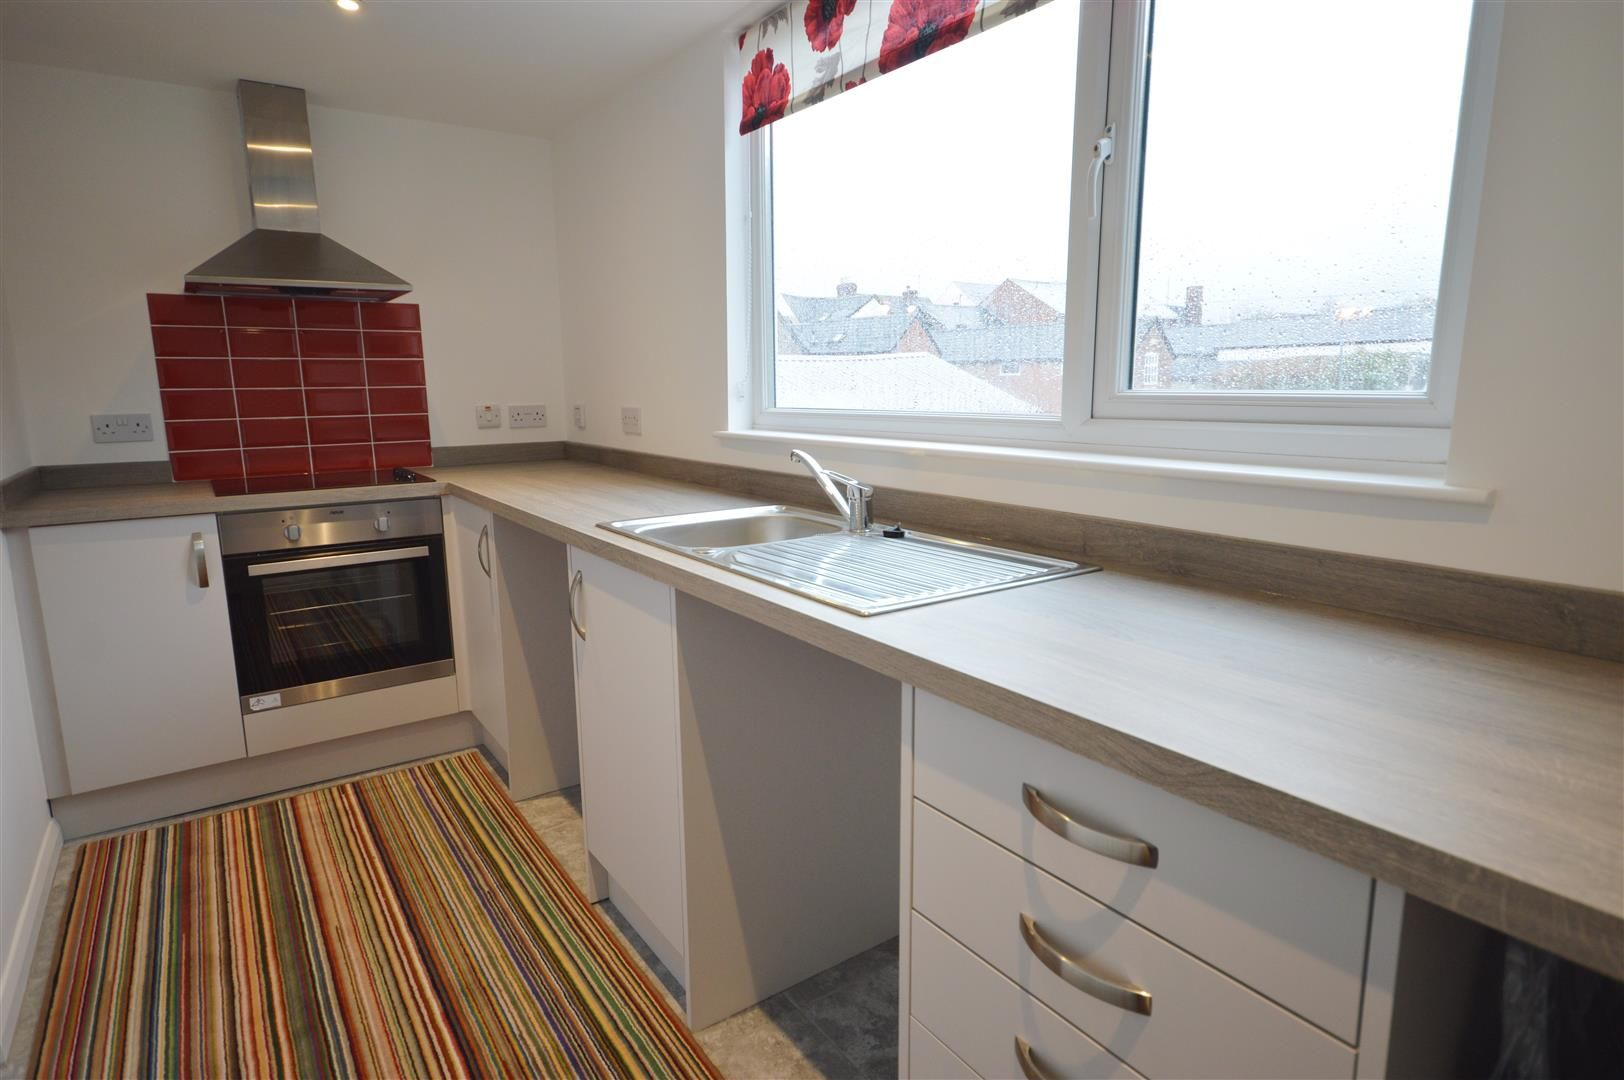 1 bed flat to rent in Leominster - Property Image 1